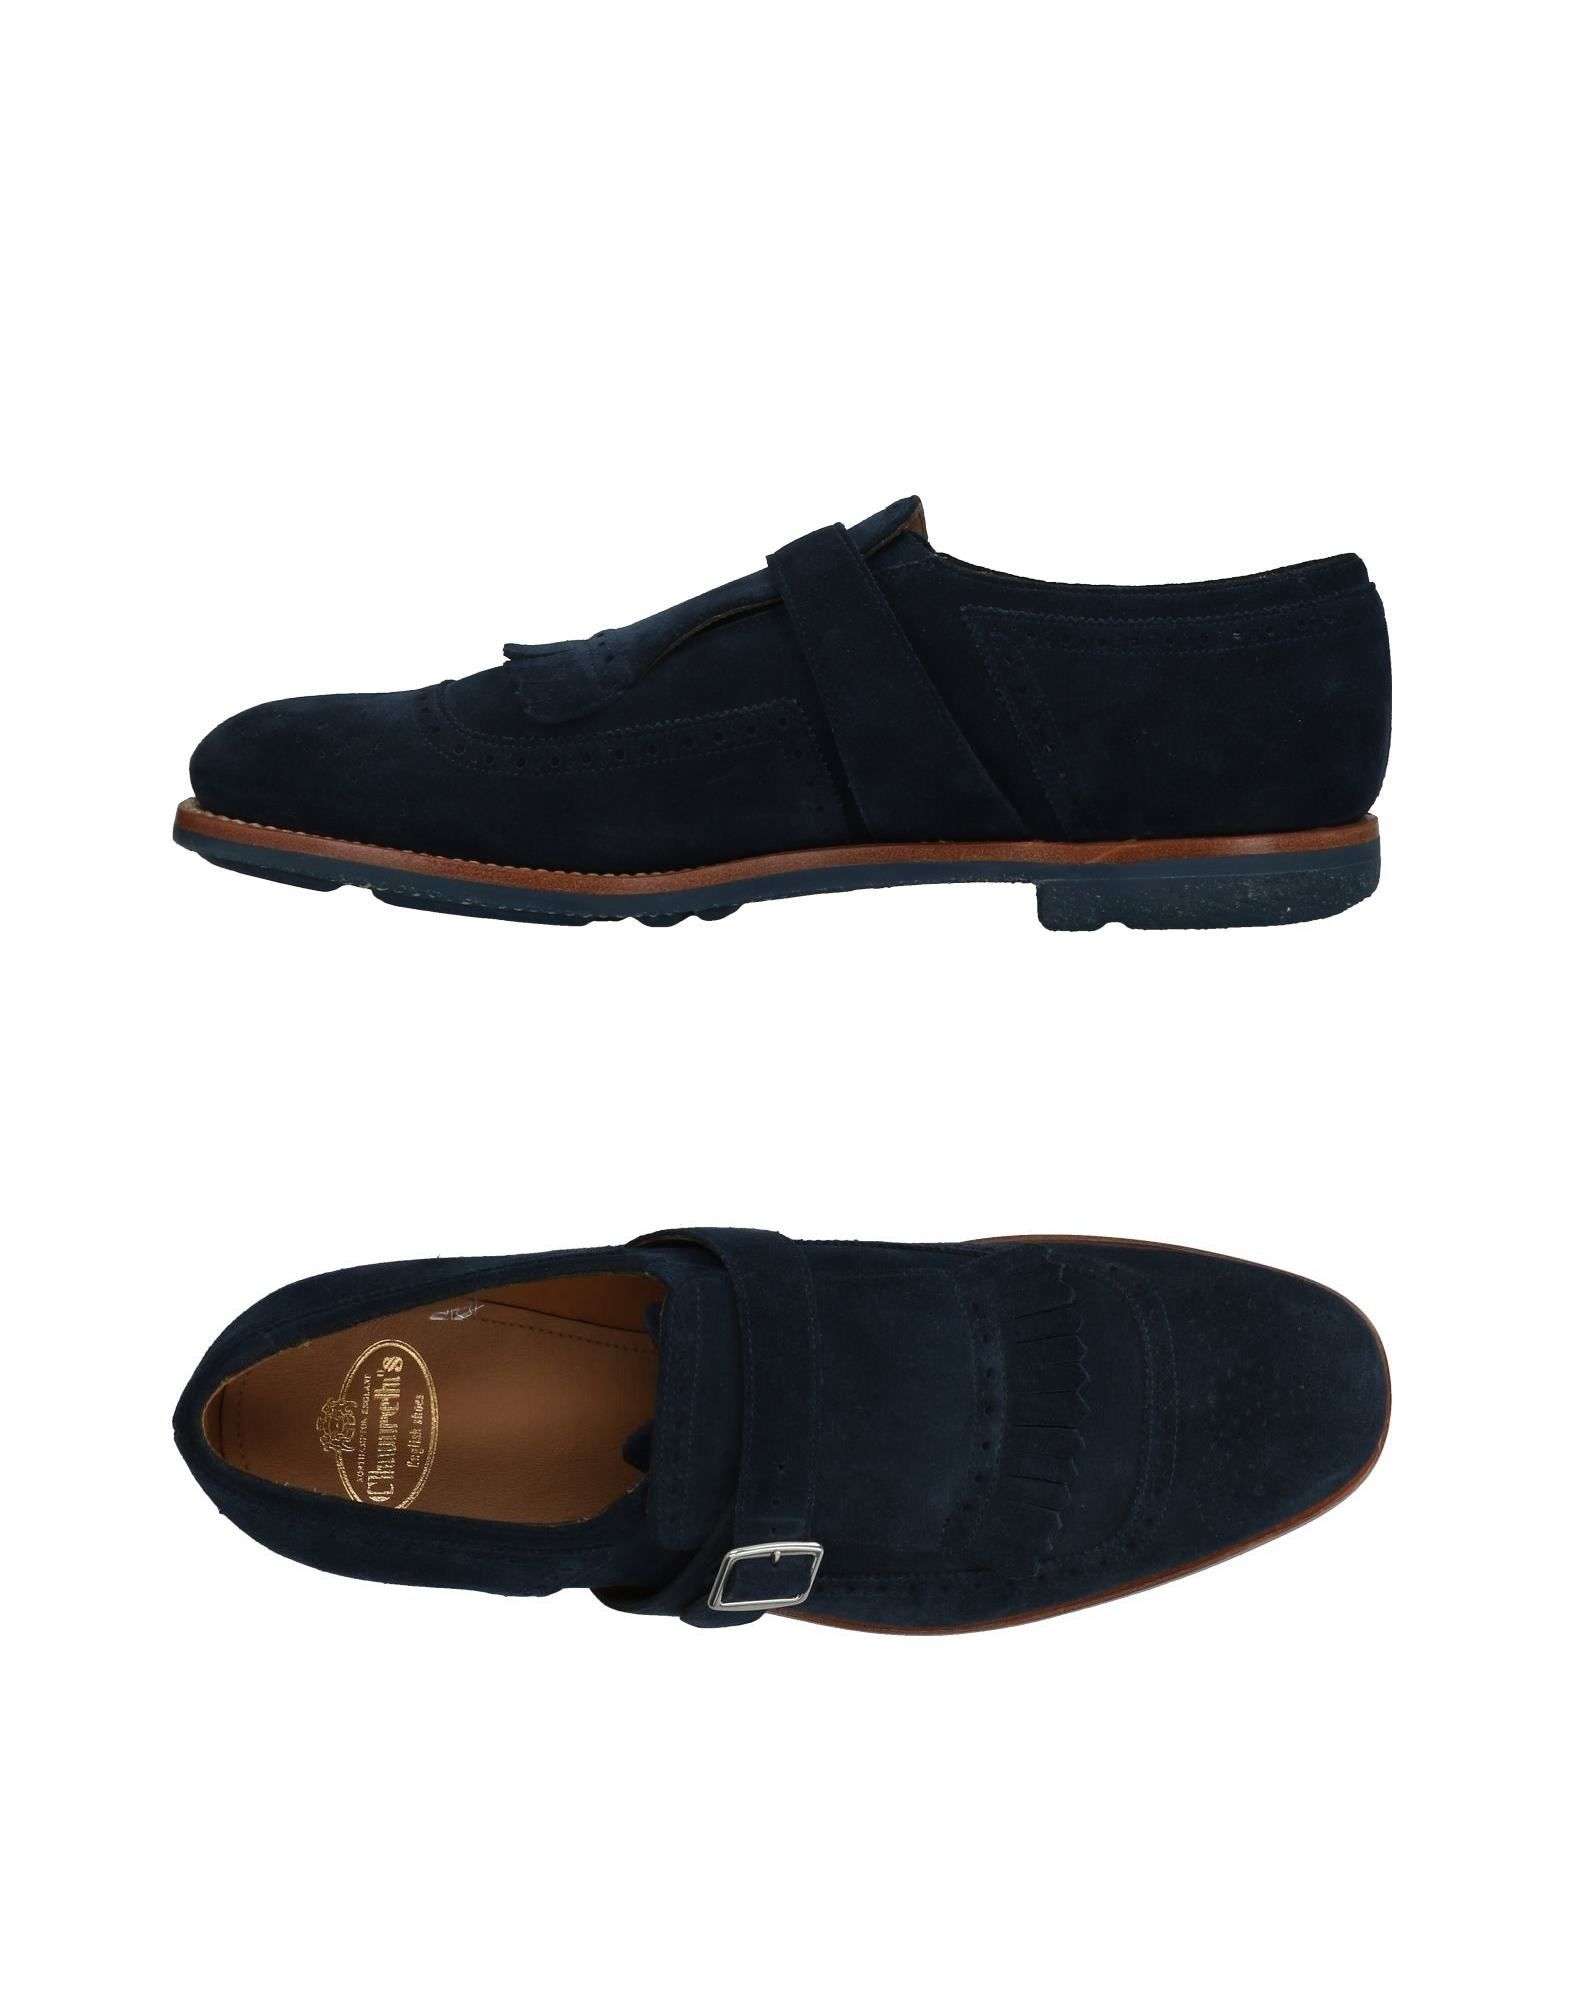 Church's on Loafers - Men Church's Loafers online on Church's  Australia - 11434414LV a950ab